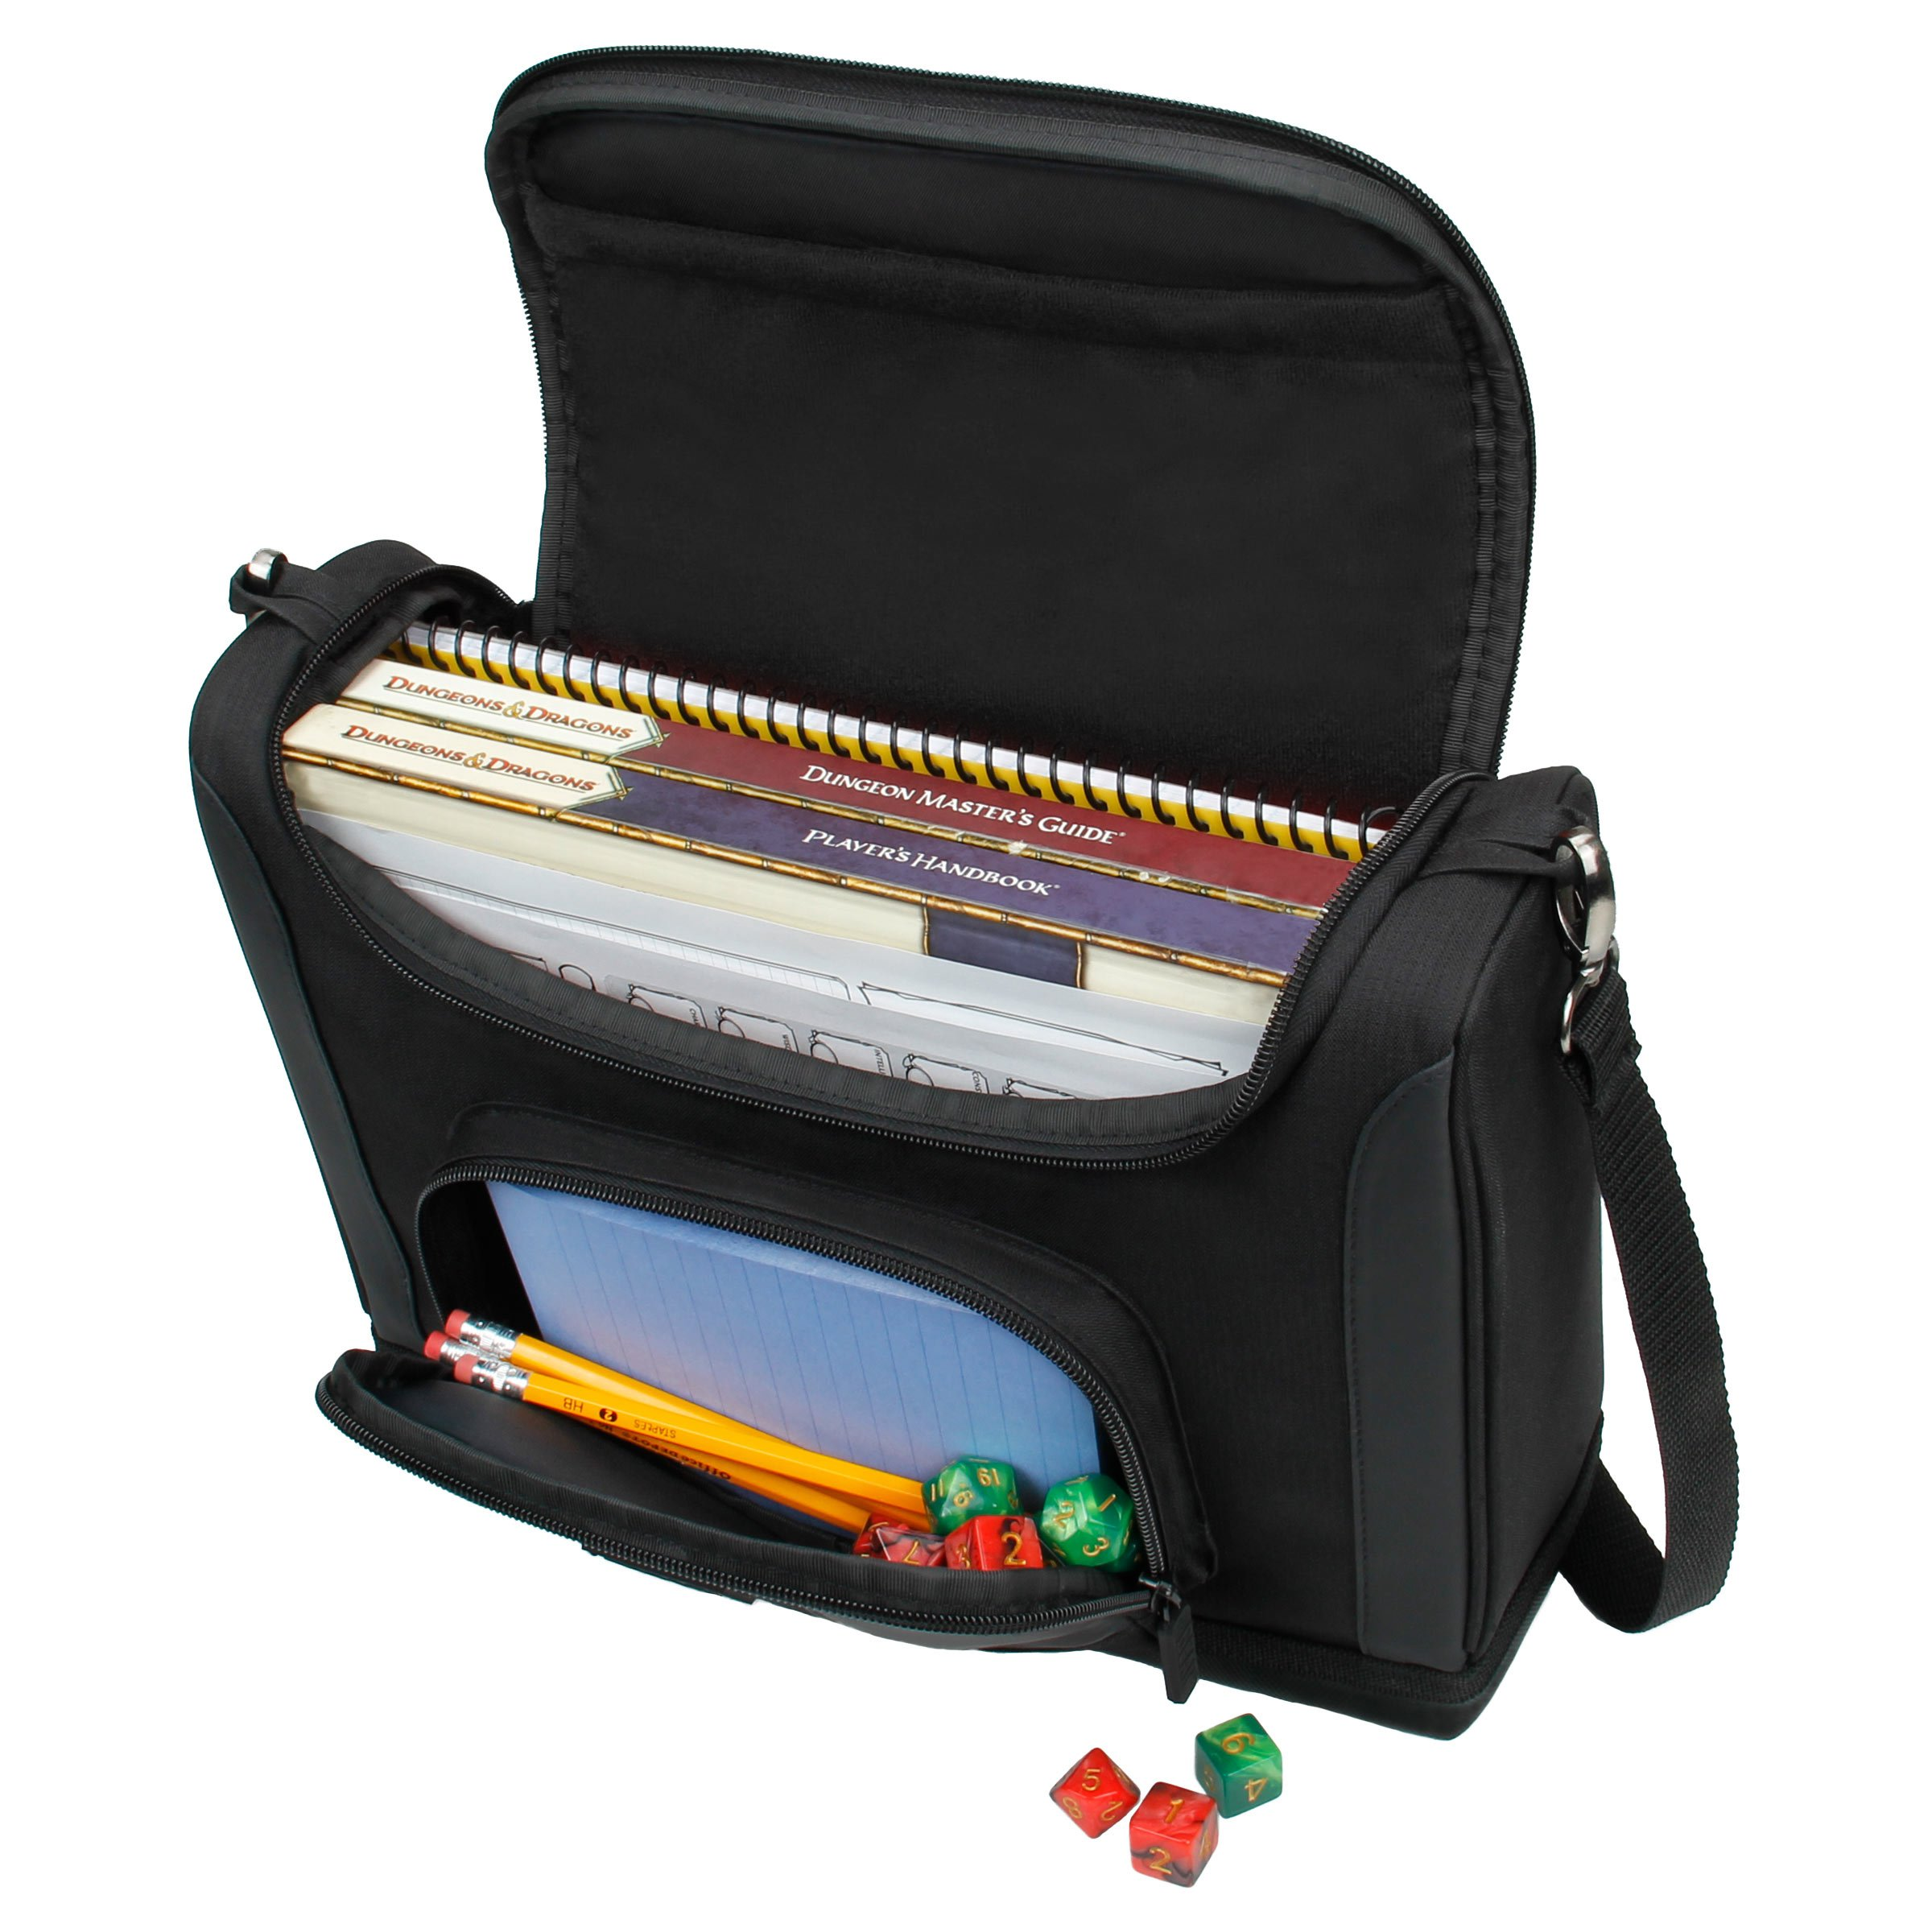 USA GEAR Compact Travel Bag Compatible with Dungeons and Dragons Accessories - Small DND Bag fits RPG Player Essentials, Player's Handbook, Character Sheets, Dice, Tokens, Mini Player Items (Black)